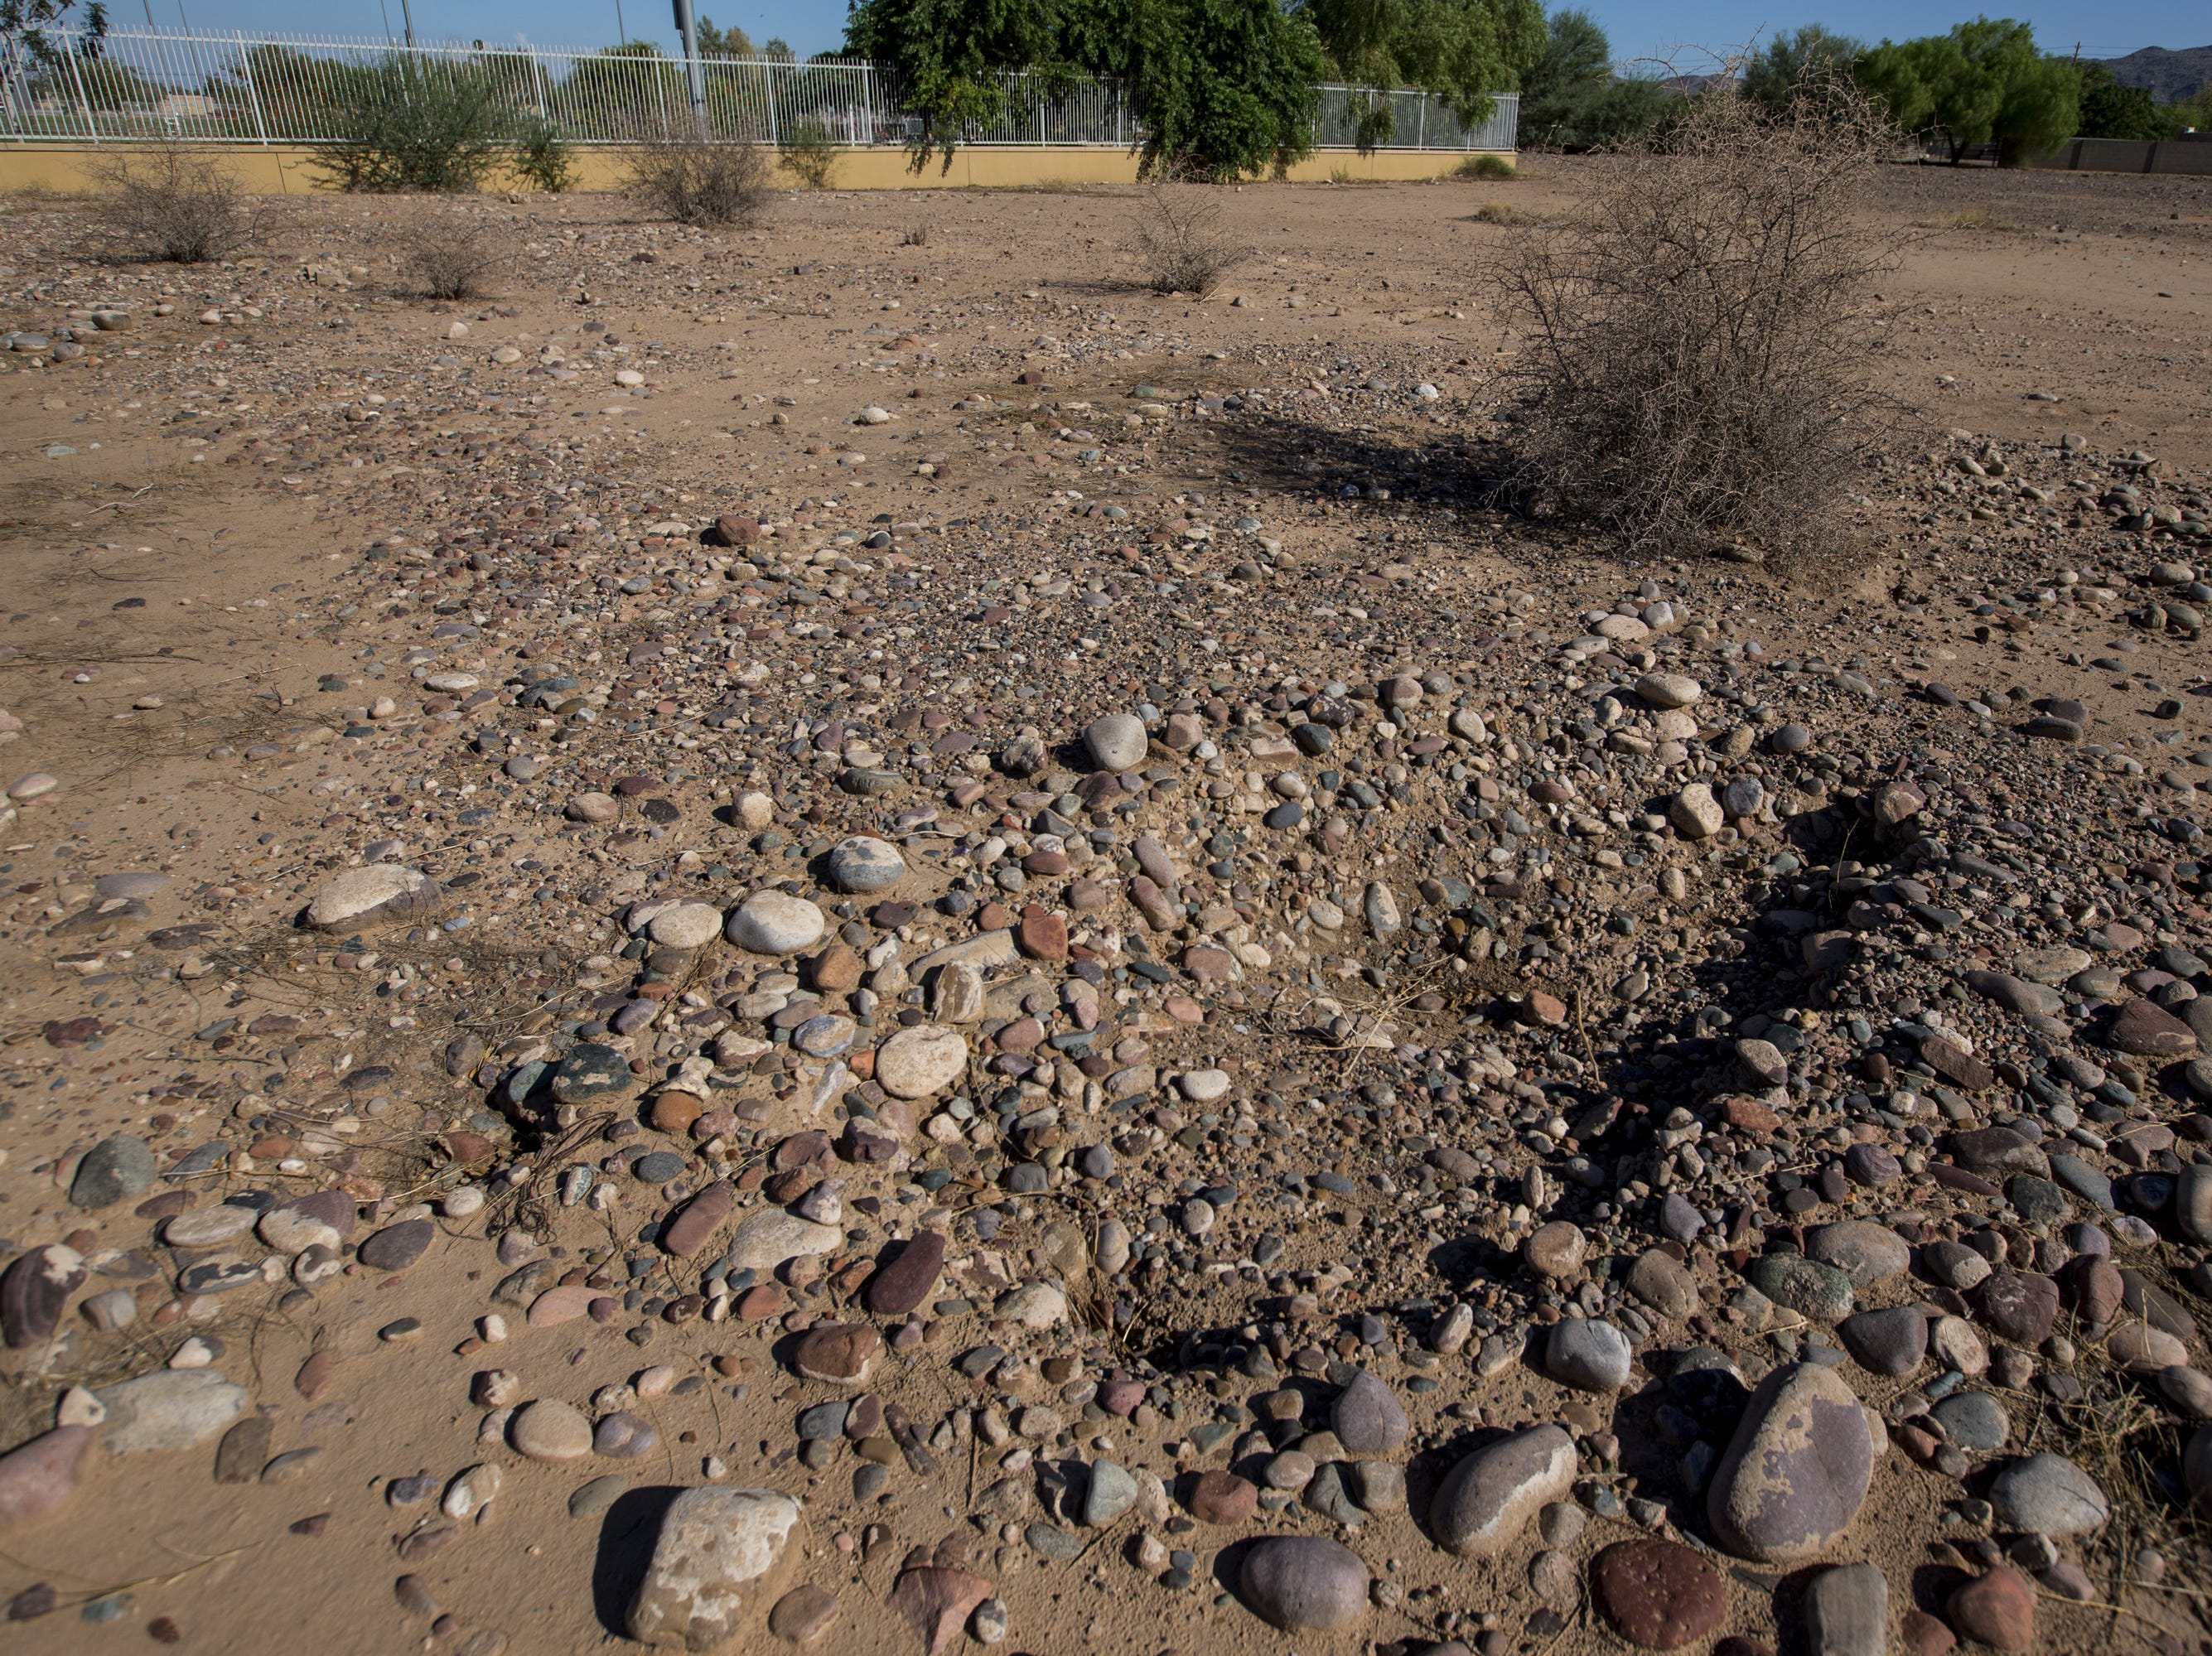 An excavated grave is pictured Sept. 20, 2018, at Sotelo-Heard Cemetery in Phoenix. Some of the headstones from the historic cemetery have been moved to their current location to prevent vandalization.